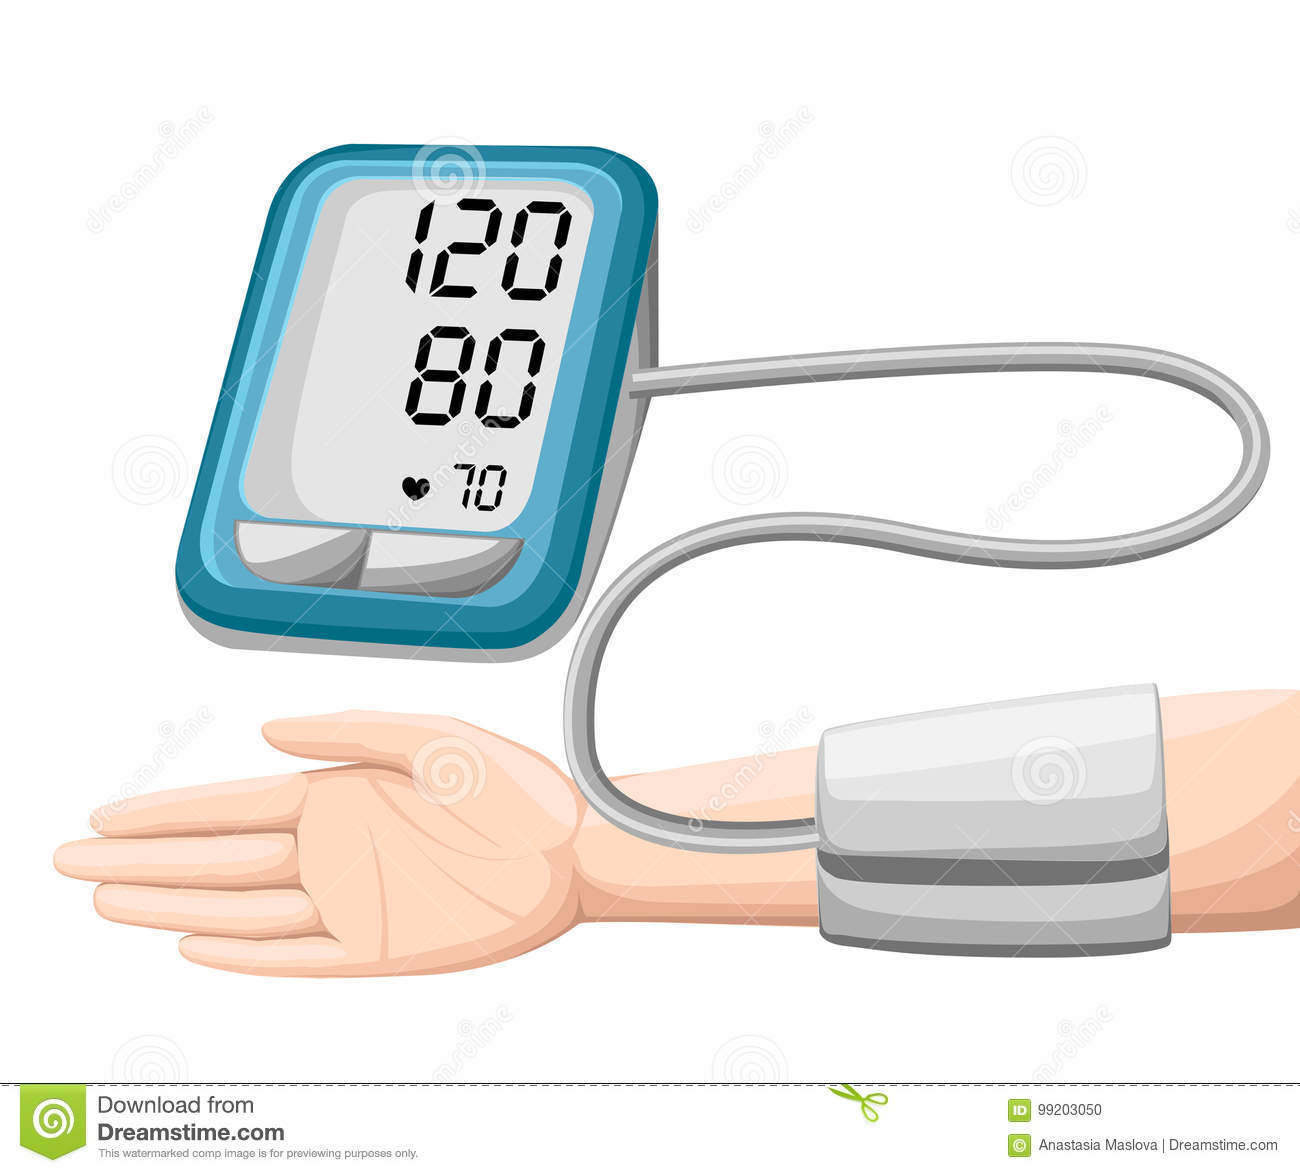 Man checking arterial blood pressure. Digital device tonometer. Medical equipment. Diagnose hypertension, heart. Measuring, monito